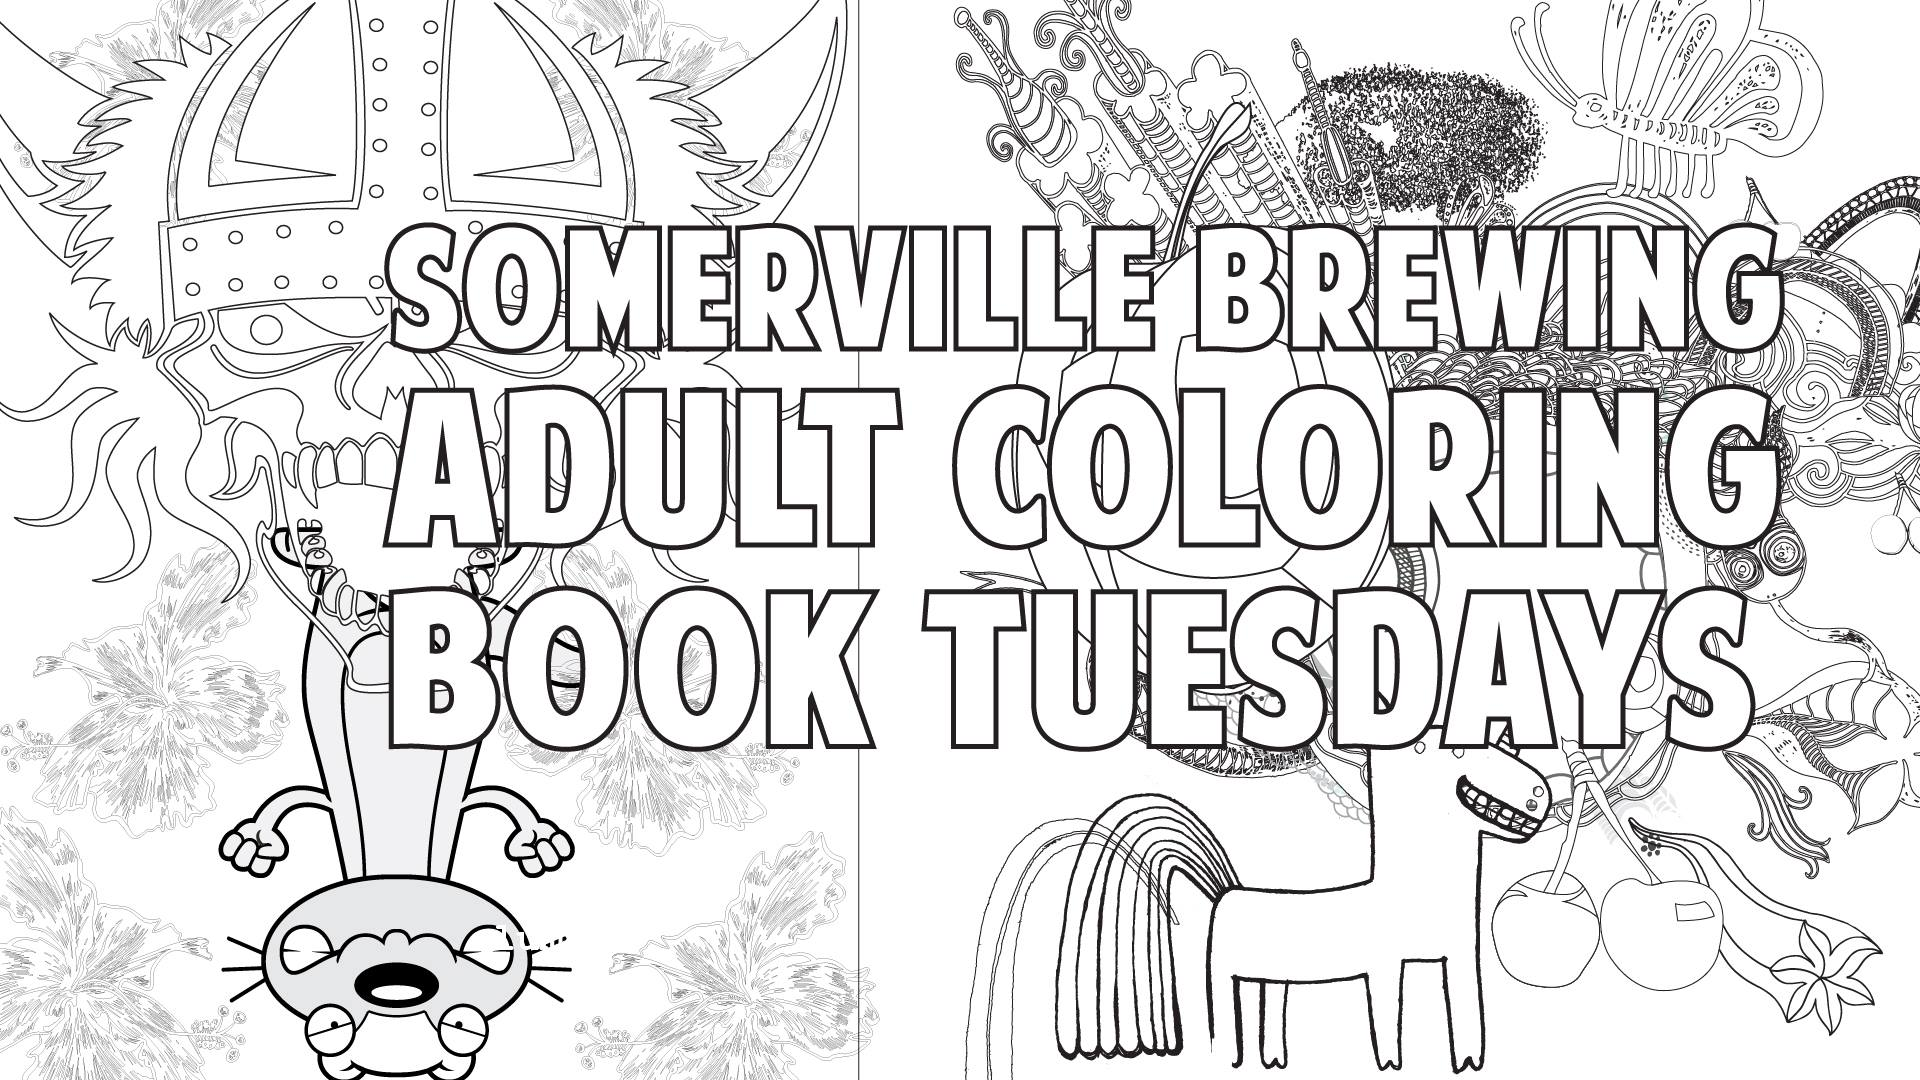 Tuesdays - Adult Coloring NightFeel like a kid again, while you drink beer. Supplies provided, or bring your own. Turn in your page for display and get a prize AND a high-five.